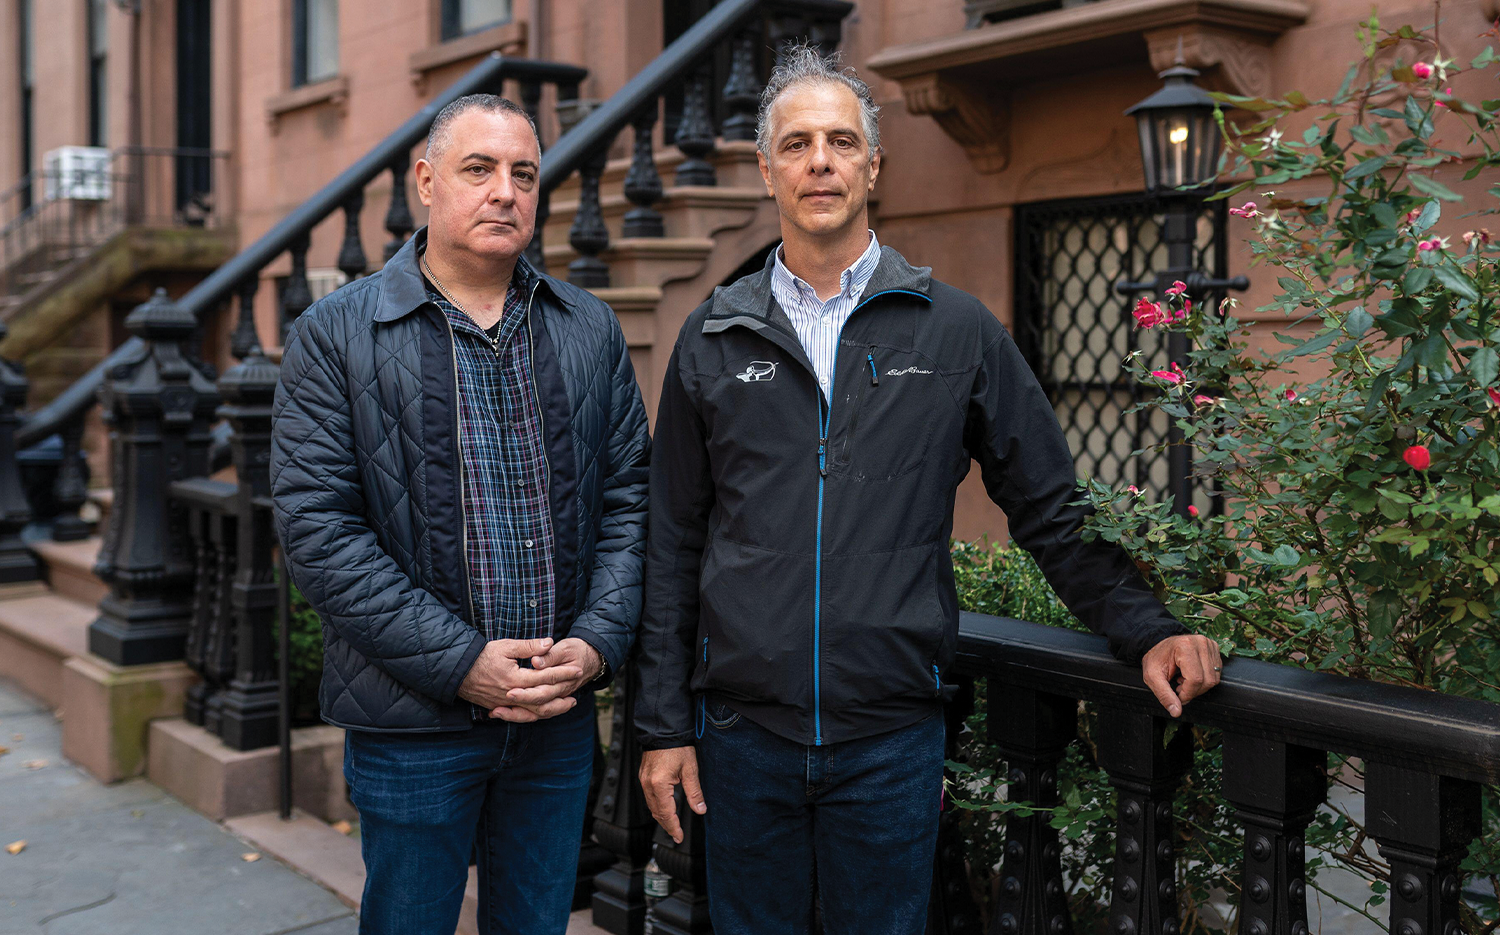 Brothers Peter (left) and Daniel Arbeeny stand in their Brooklyn neighborhood.